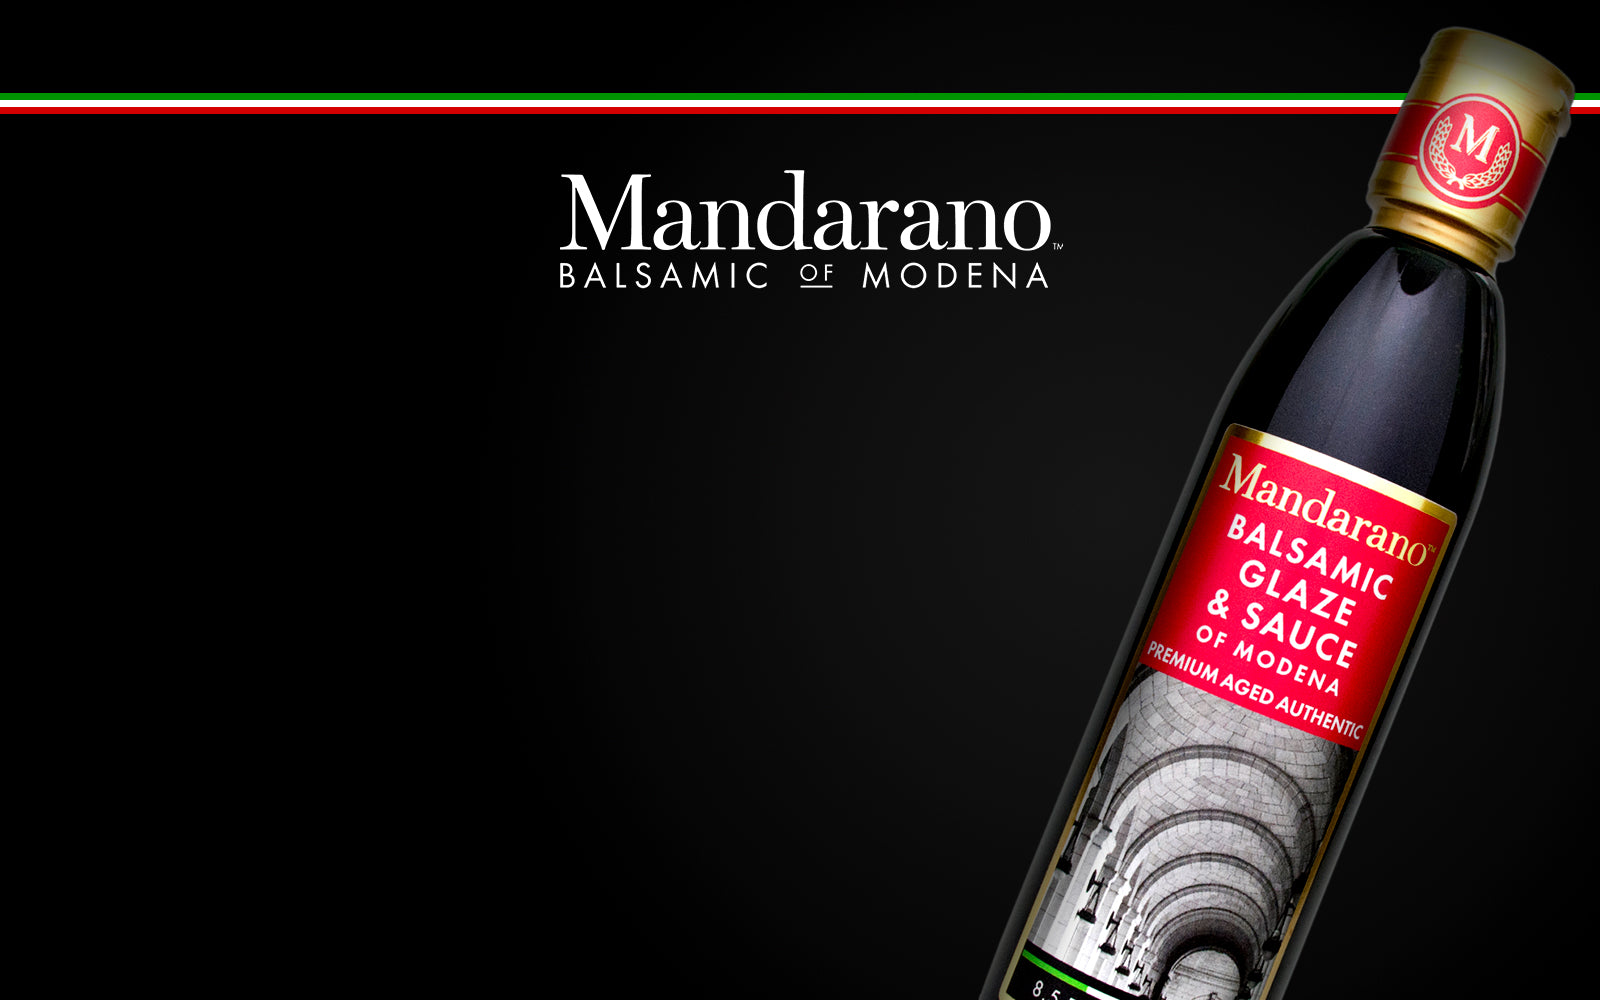 Mandarano Balsamic Premium Aged Authentic